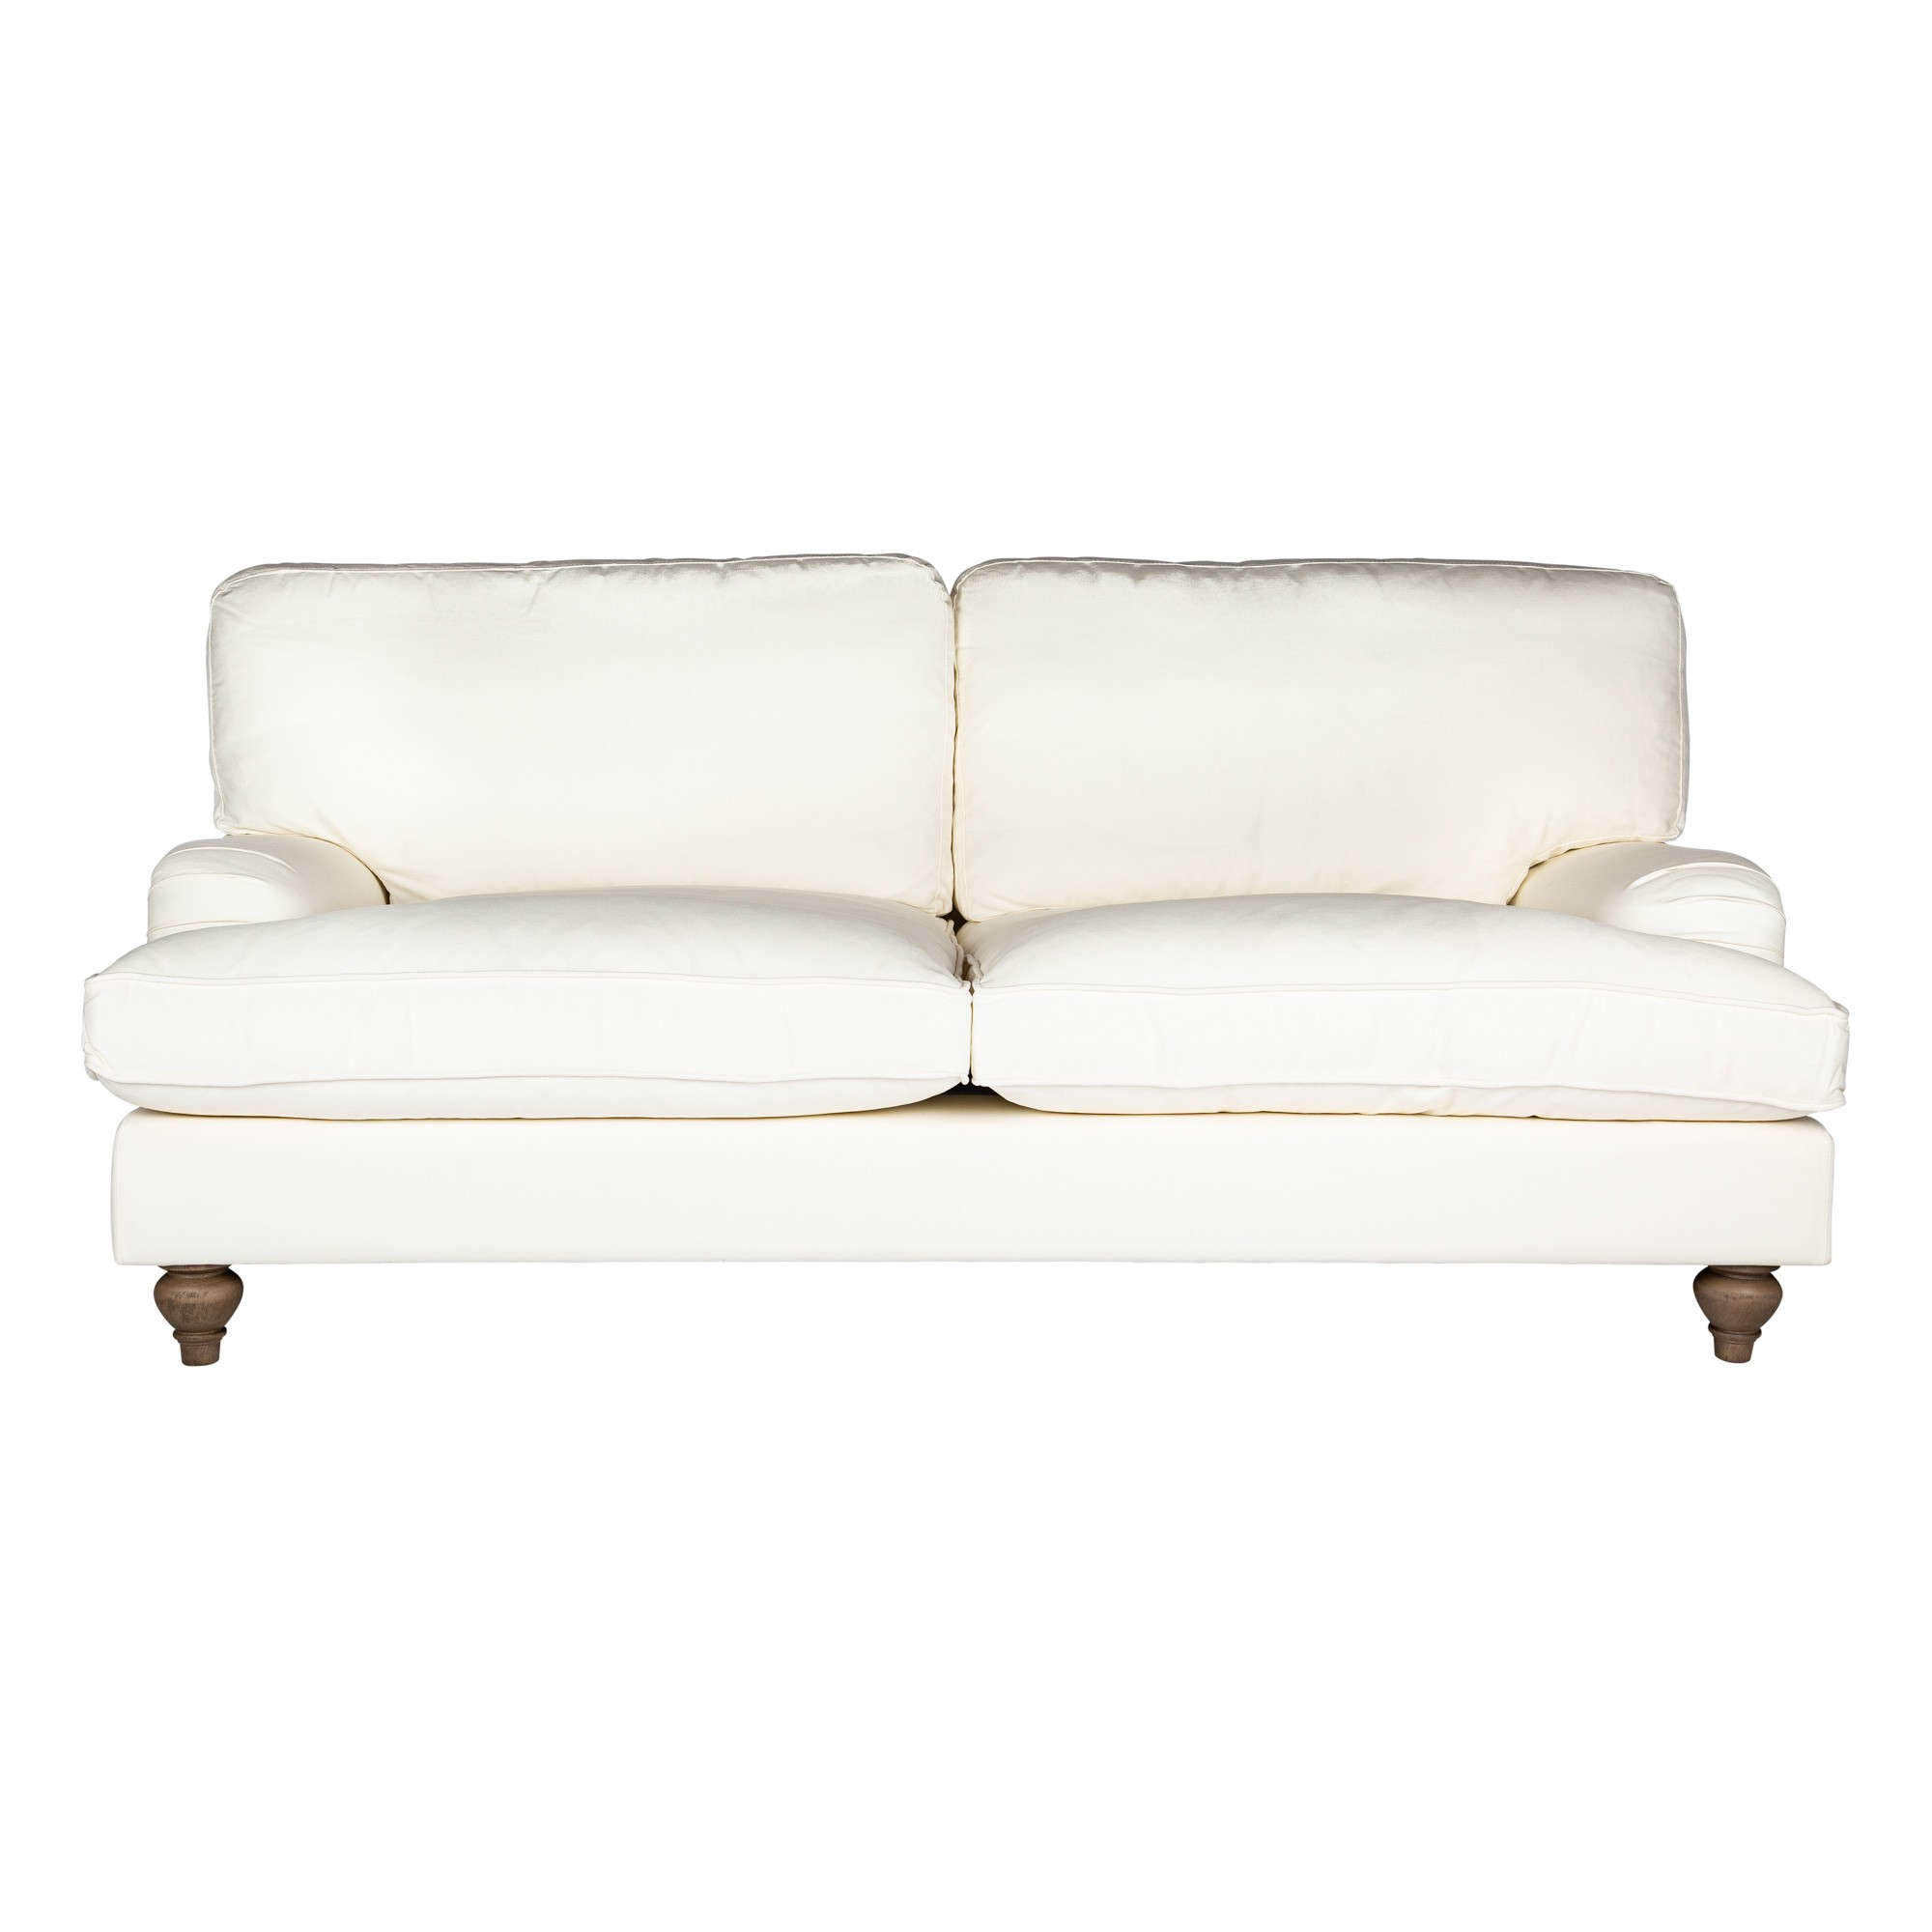 Jasmine Cotton Fabric Roll Arm Sofa, 2.5 Seater, Cream